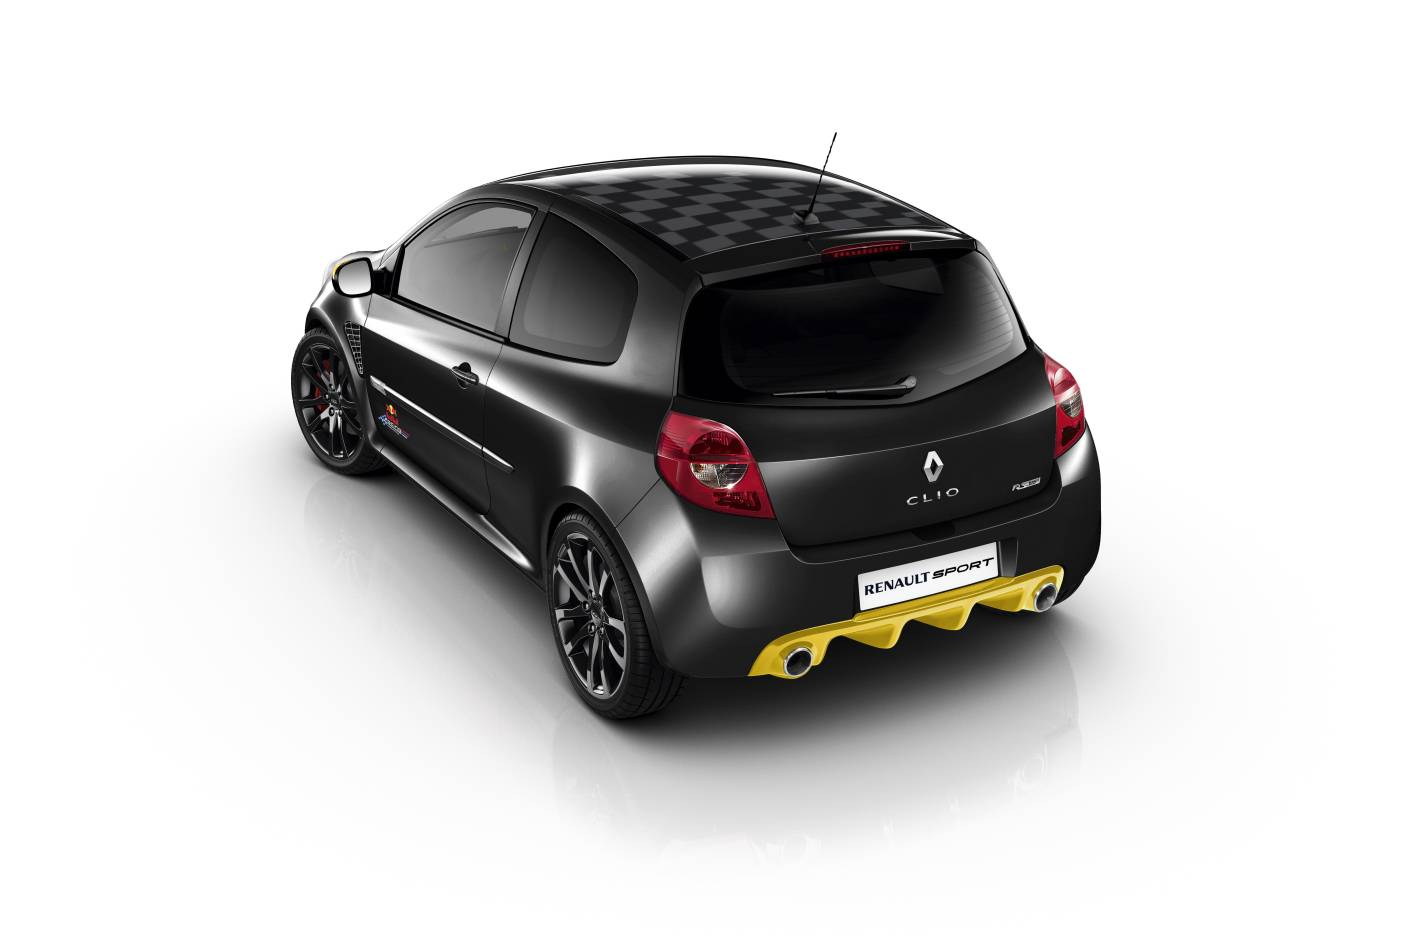 renault cars news l e clio megane r s red bull. Black Bedroom Furniture Sets. Home Design Ideas